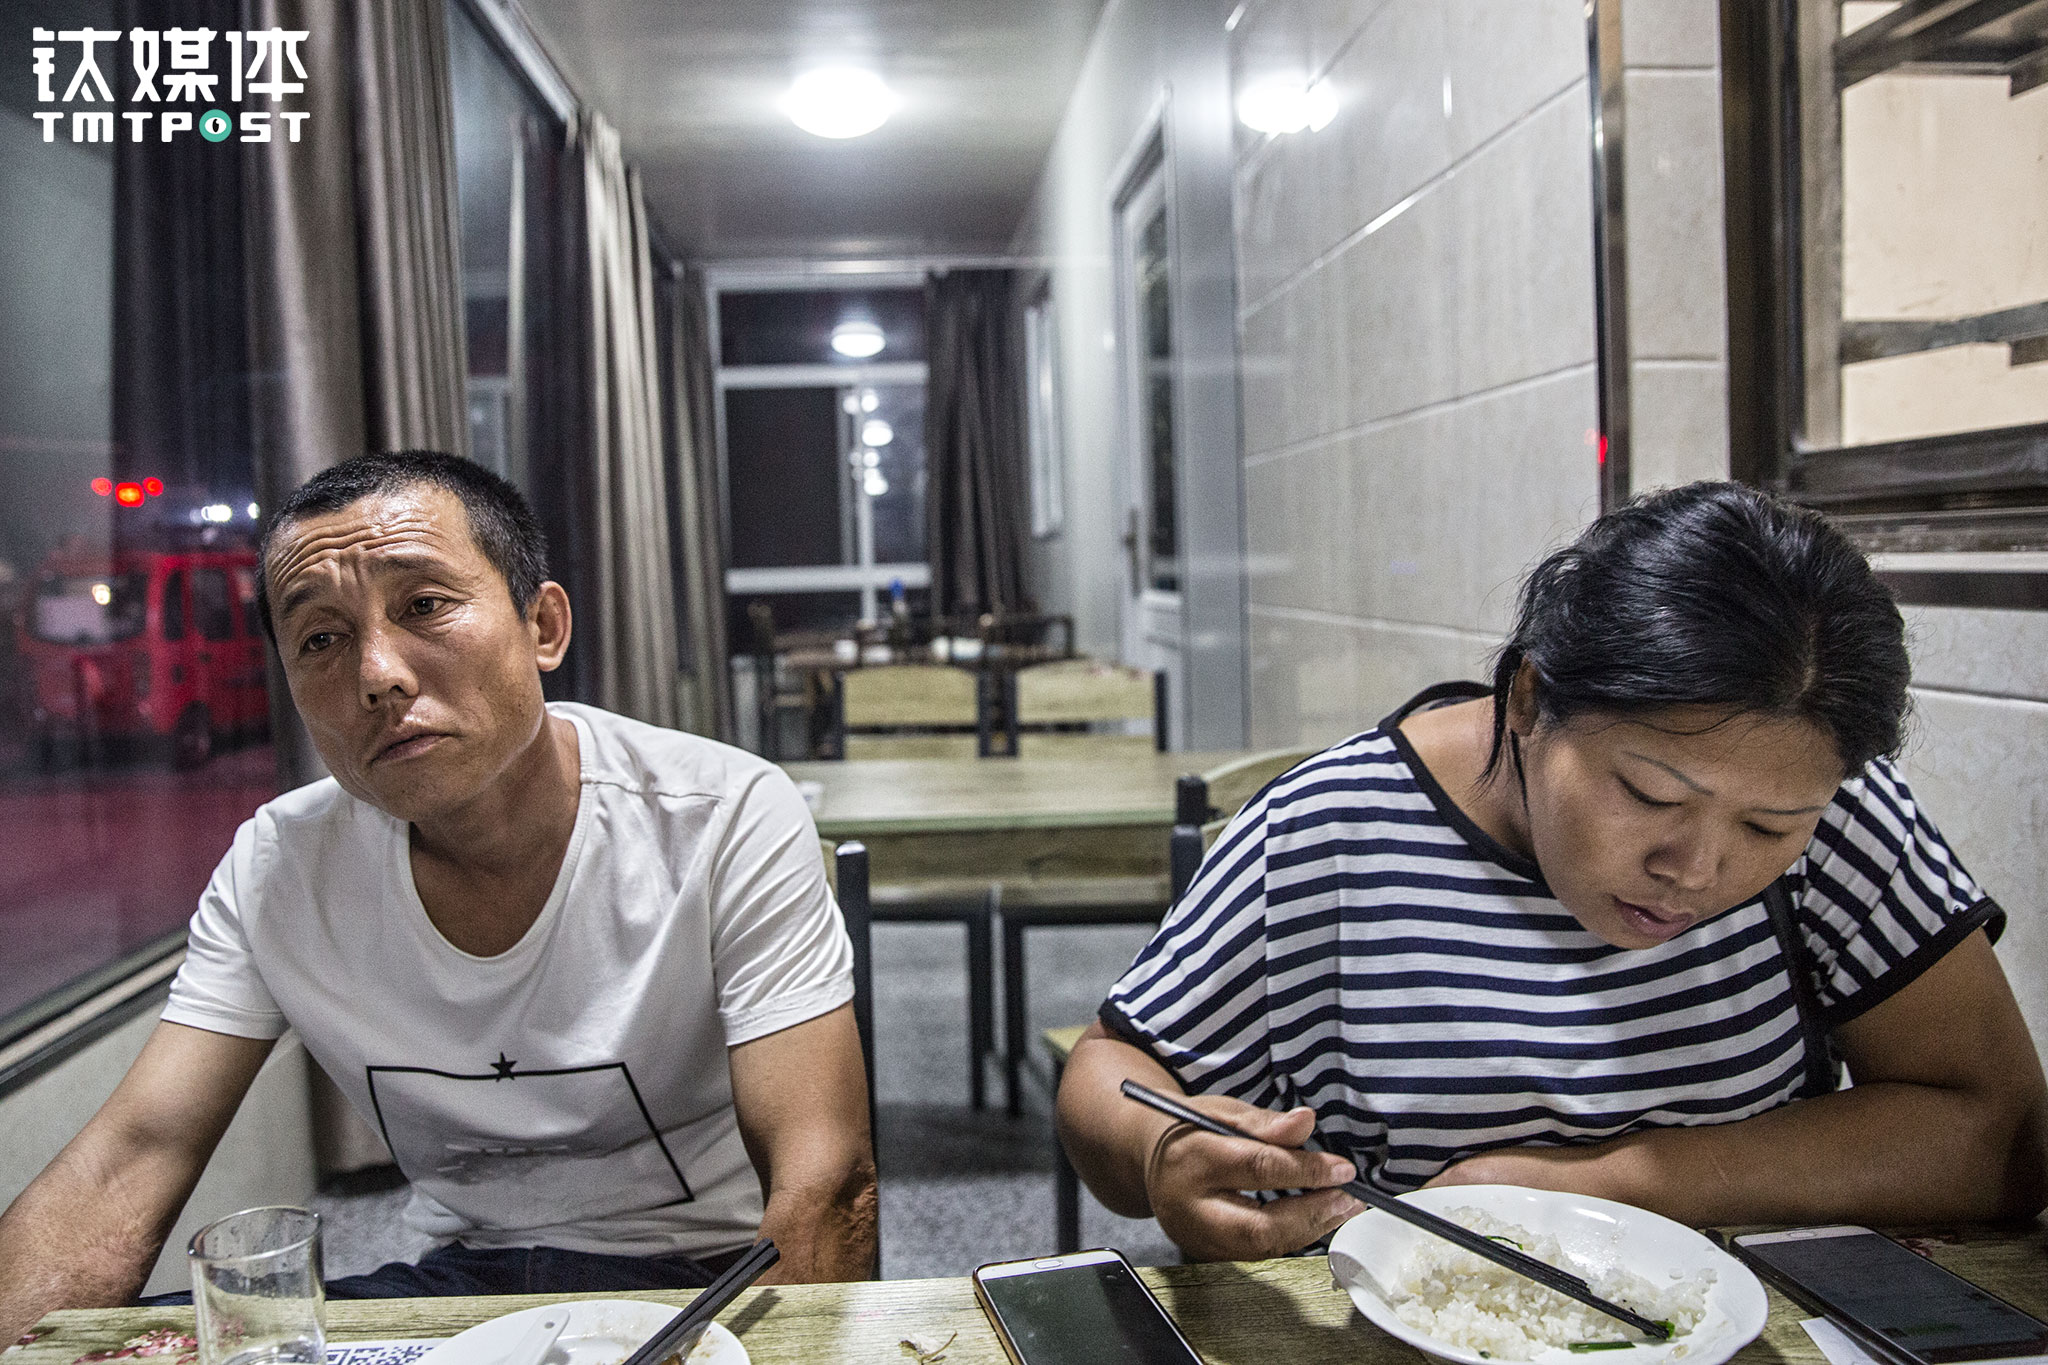 "At 11:00 pm, Jin and his wife stopped for a quick dinner and some rest at a roadside restaurant at the Linhai road in Dongtai county, Jiangsu province. Jin Qiang, who is only 38 years old, appears to look older than his peers. He was happy that he had finished paying the loan a couple of years ago when the loan options were better. ""If we got a loan to purchase a truck now, we would have to pay a monthly loan of over ten thousand yuan. It would be very hard for us,"" Jin Qiang said, ""The freight income has been dropping in recent years, almost by 30%."" After the 921 Regulation and Rules on Truck Load was introduced in 2016, the freight fee went up for two months, then dropped continuously later. Jin understood that the regulator launched stricter rules to insure safety and reduce accident rate. But he also had to face the dropping freight income, which made him feel quite powerless."